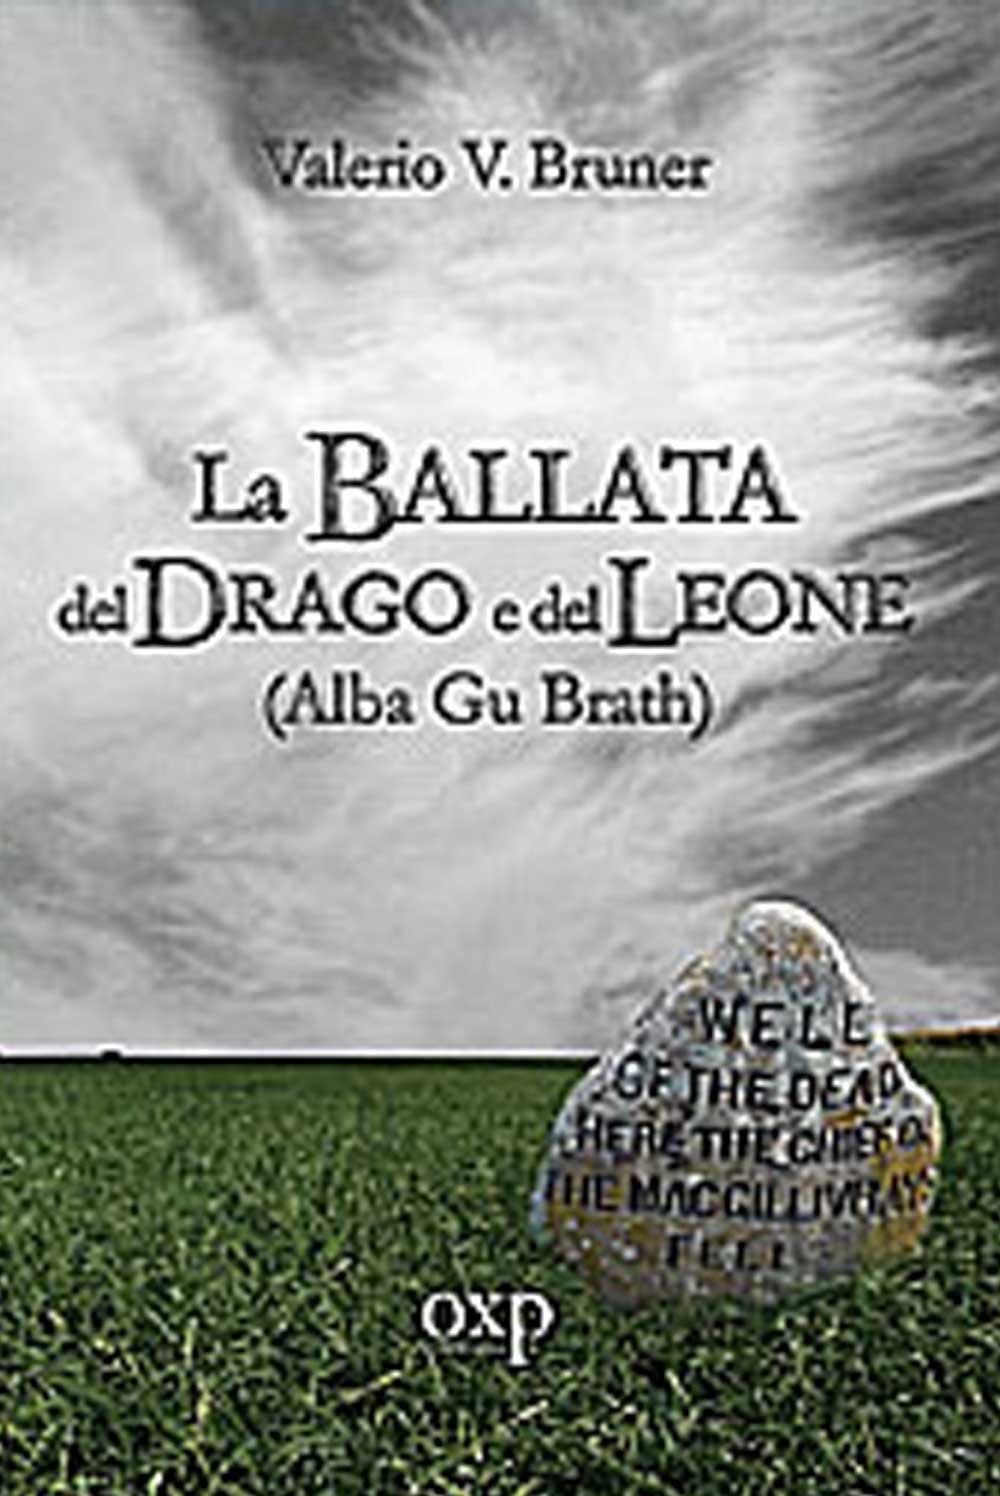 https://www.amazon.it/ballata-drago-leone-Alba-Brath/dp/8895007409